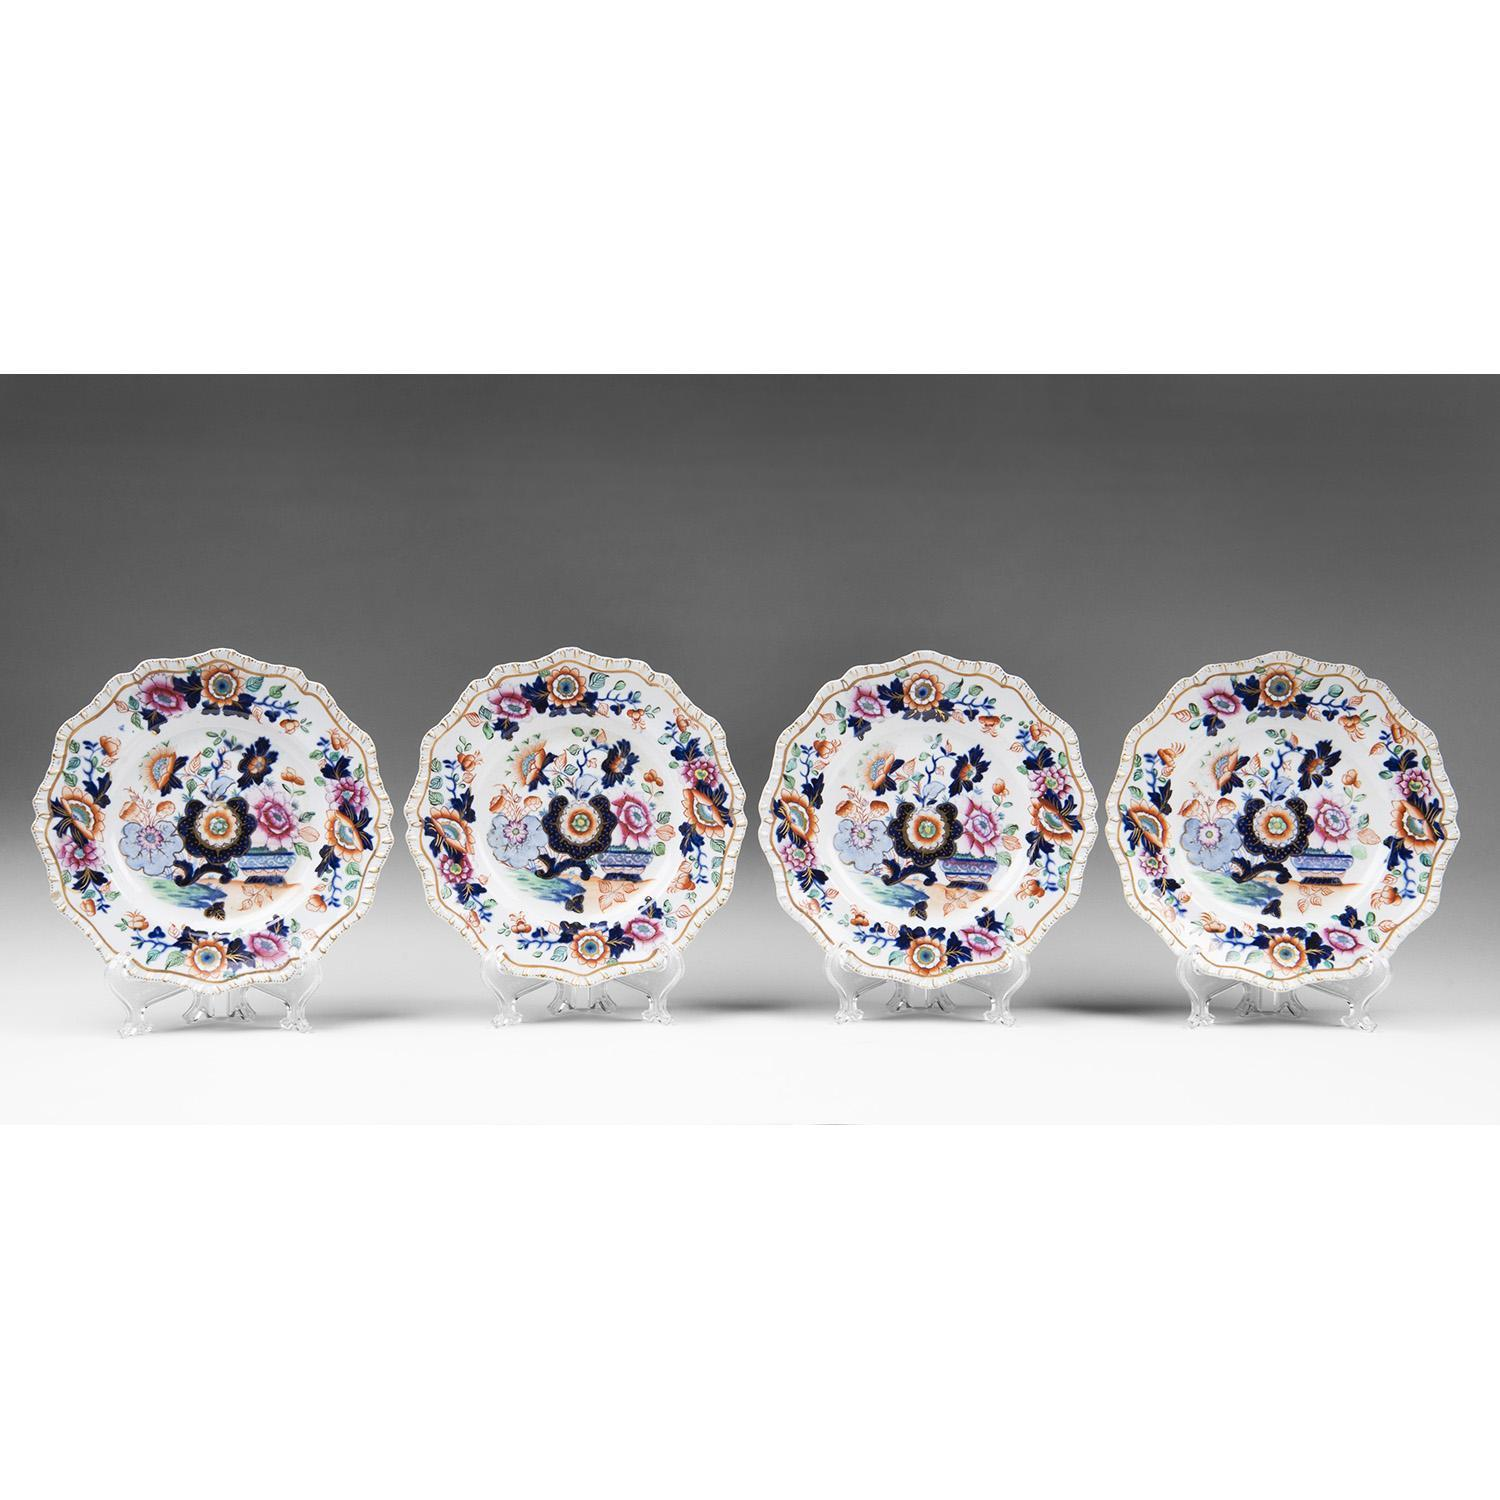 Set of Four Hicks & Meigh 1825 Cake Plates